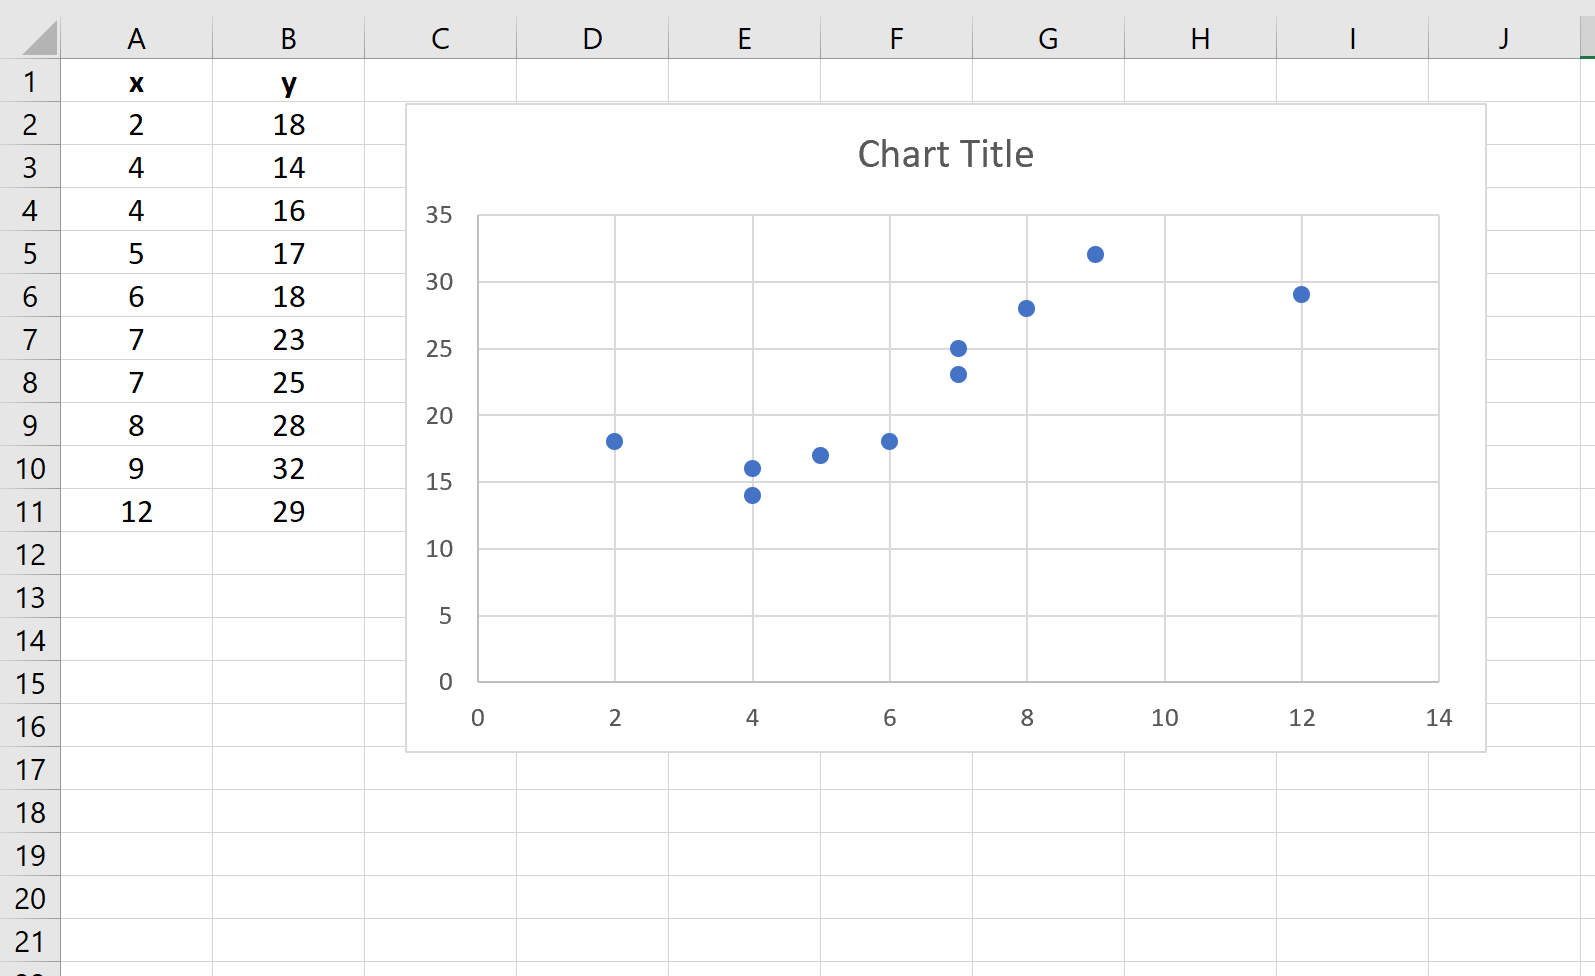 Cubic relationship in scatterplot in Excel example